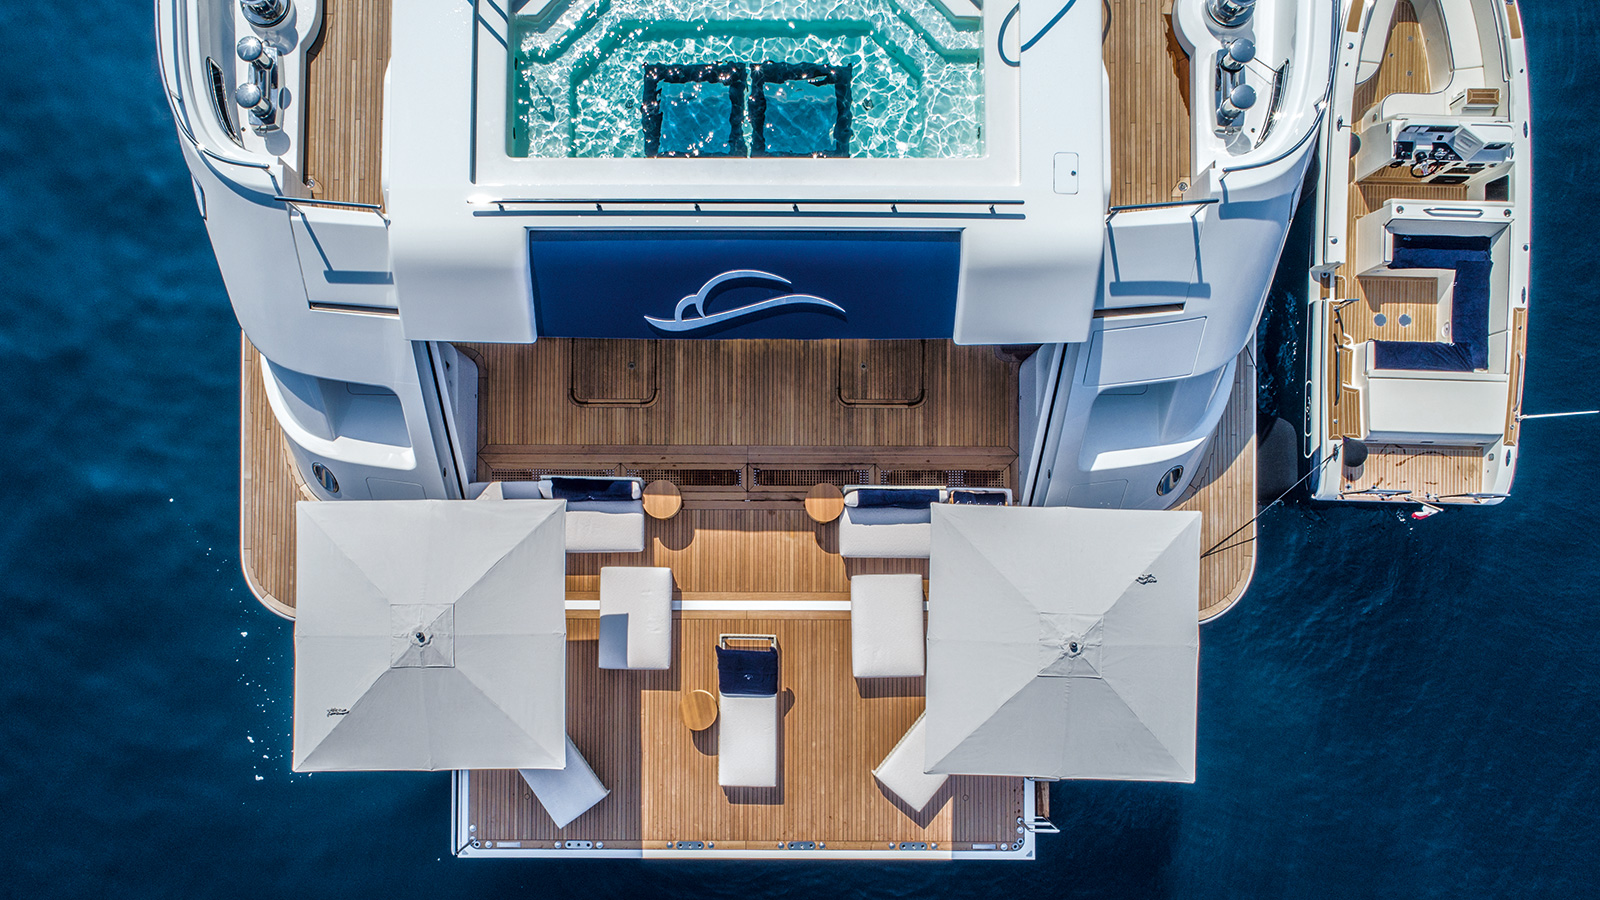 aerial-view-of-the-beach-club-on-the-crn-superyacht-cloud-9-credit-maurizio-paradisi